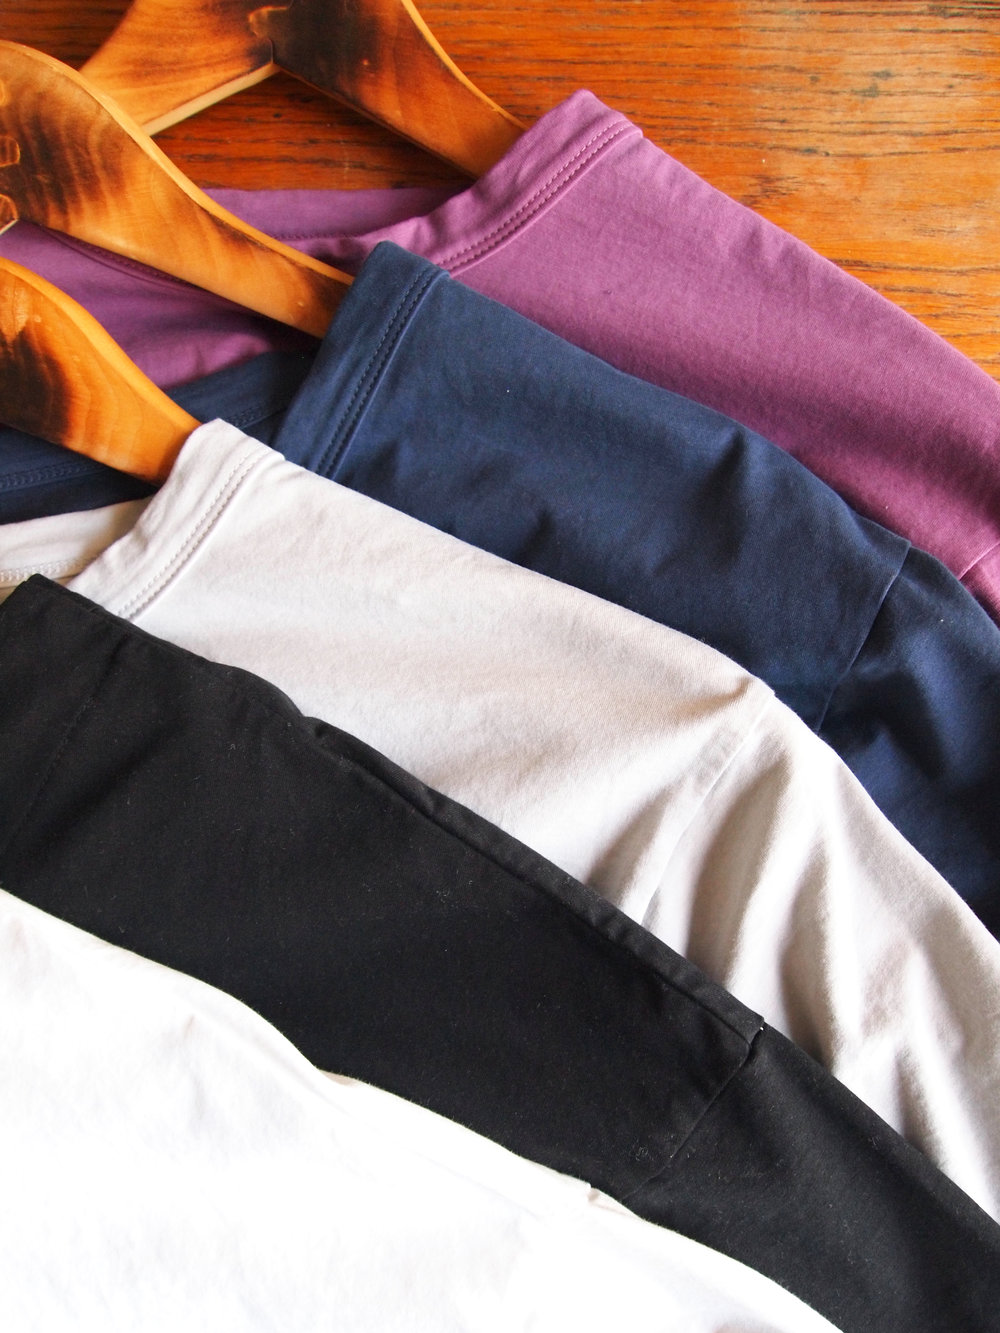 color; White, Black, Grey, Navy, Plum